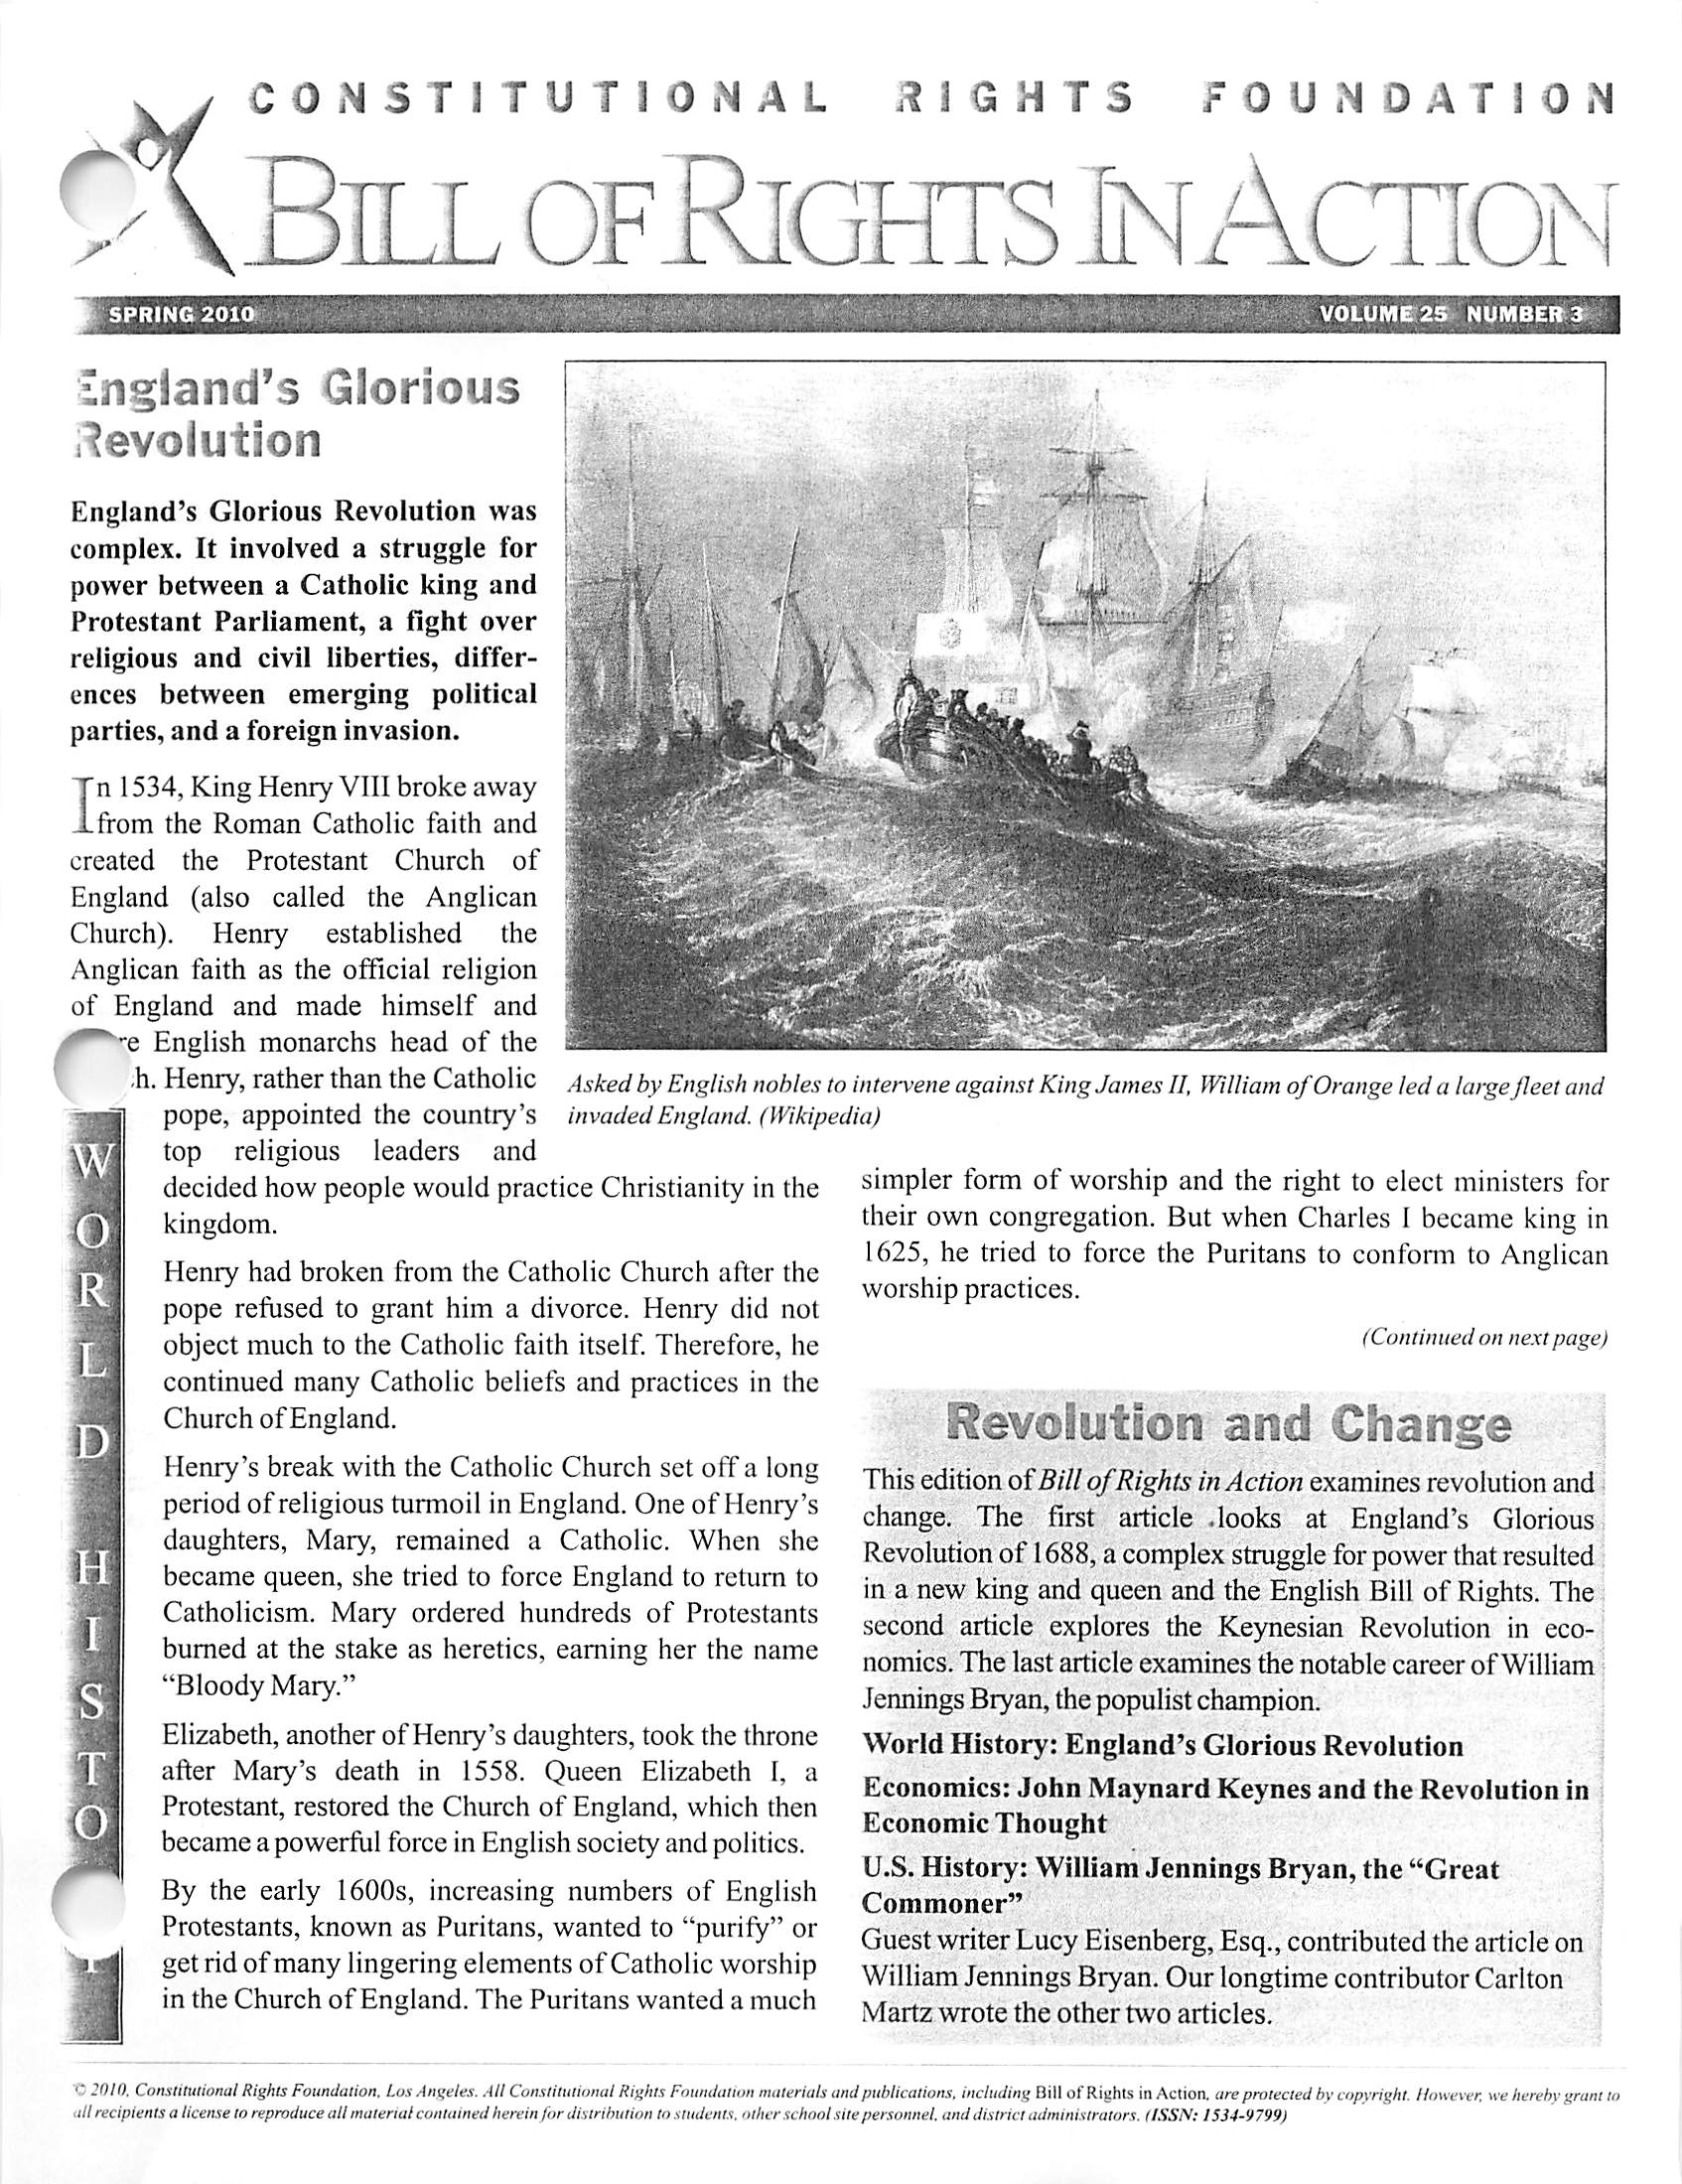 compare and contrast the glorious revolution american revolution and french revolution The american and french revolutions were fought several years and an ocean apart both the american revolution and the french revolution were borne of dire economic conditions thanks this helped me write a compare and contrast essay on french revolution vs american revolution:.